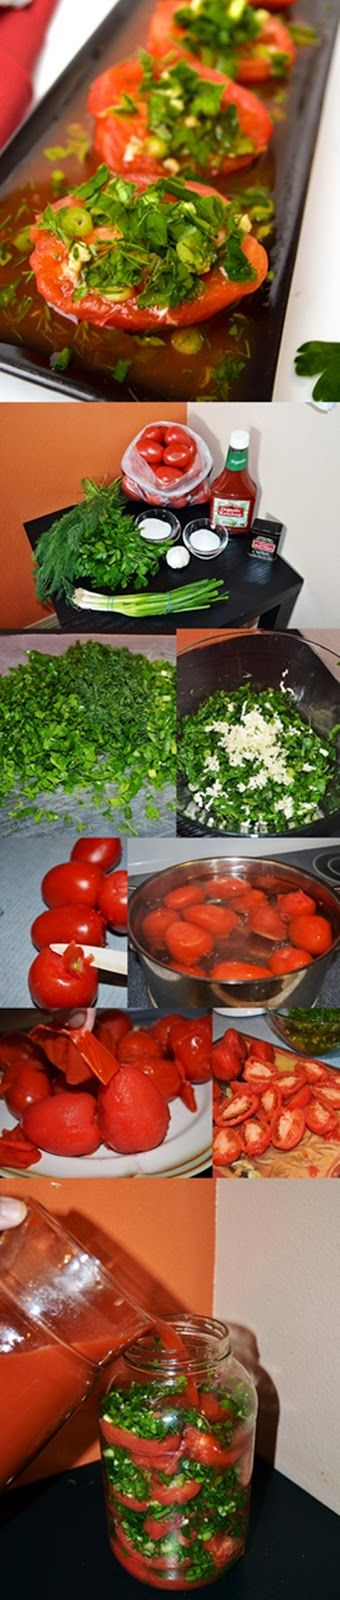 """Lea's Cooking: """"Marinated Tomatoes in Ketchup"""" Ready in 2 days!!!"""